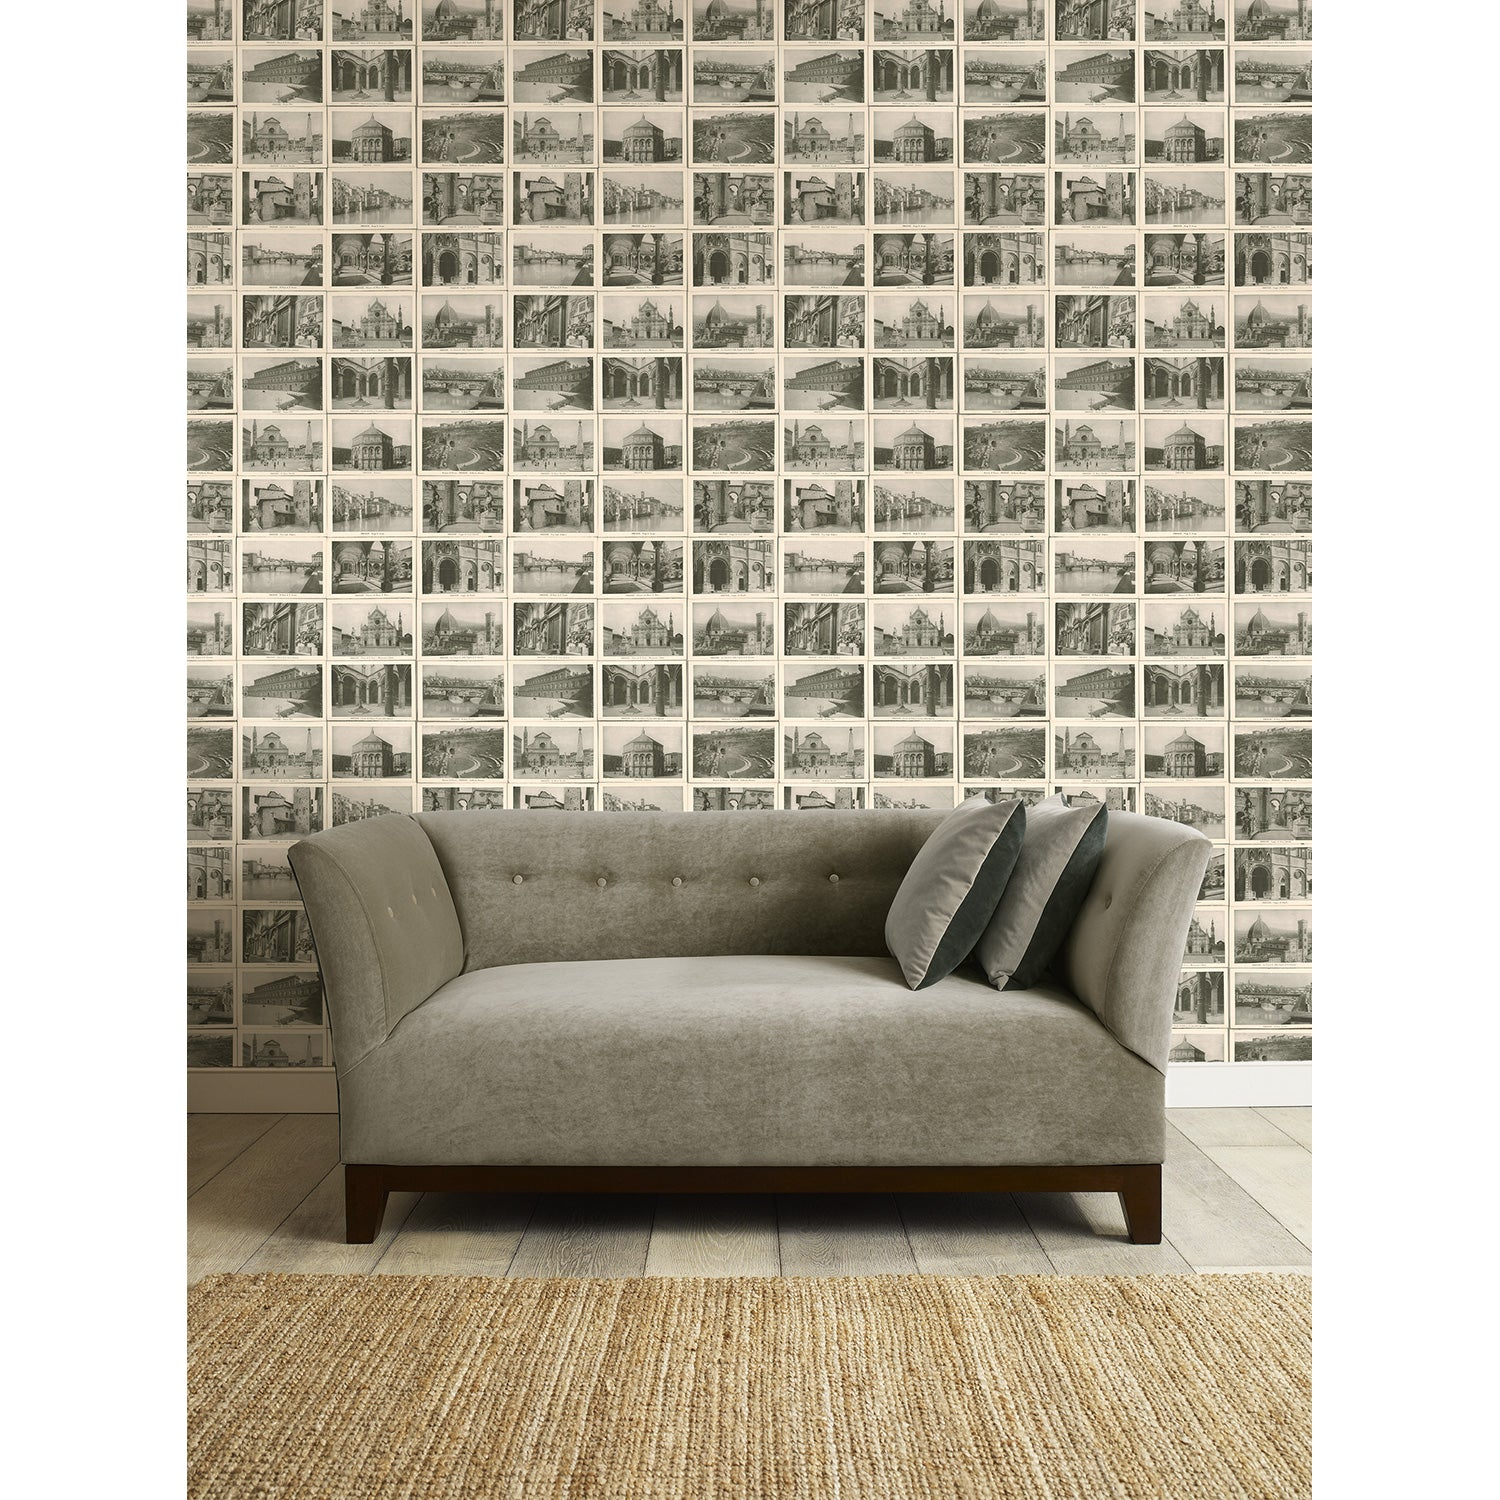 Honeychurch Wallpaper - Feature wallpaper for walls with vintage postcards of Florence, Italy